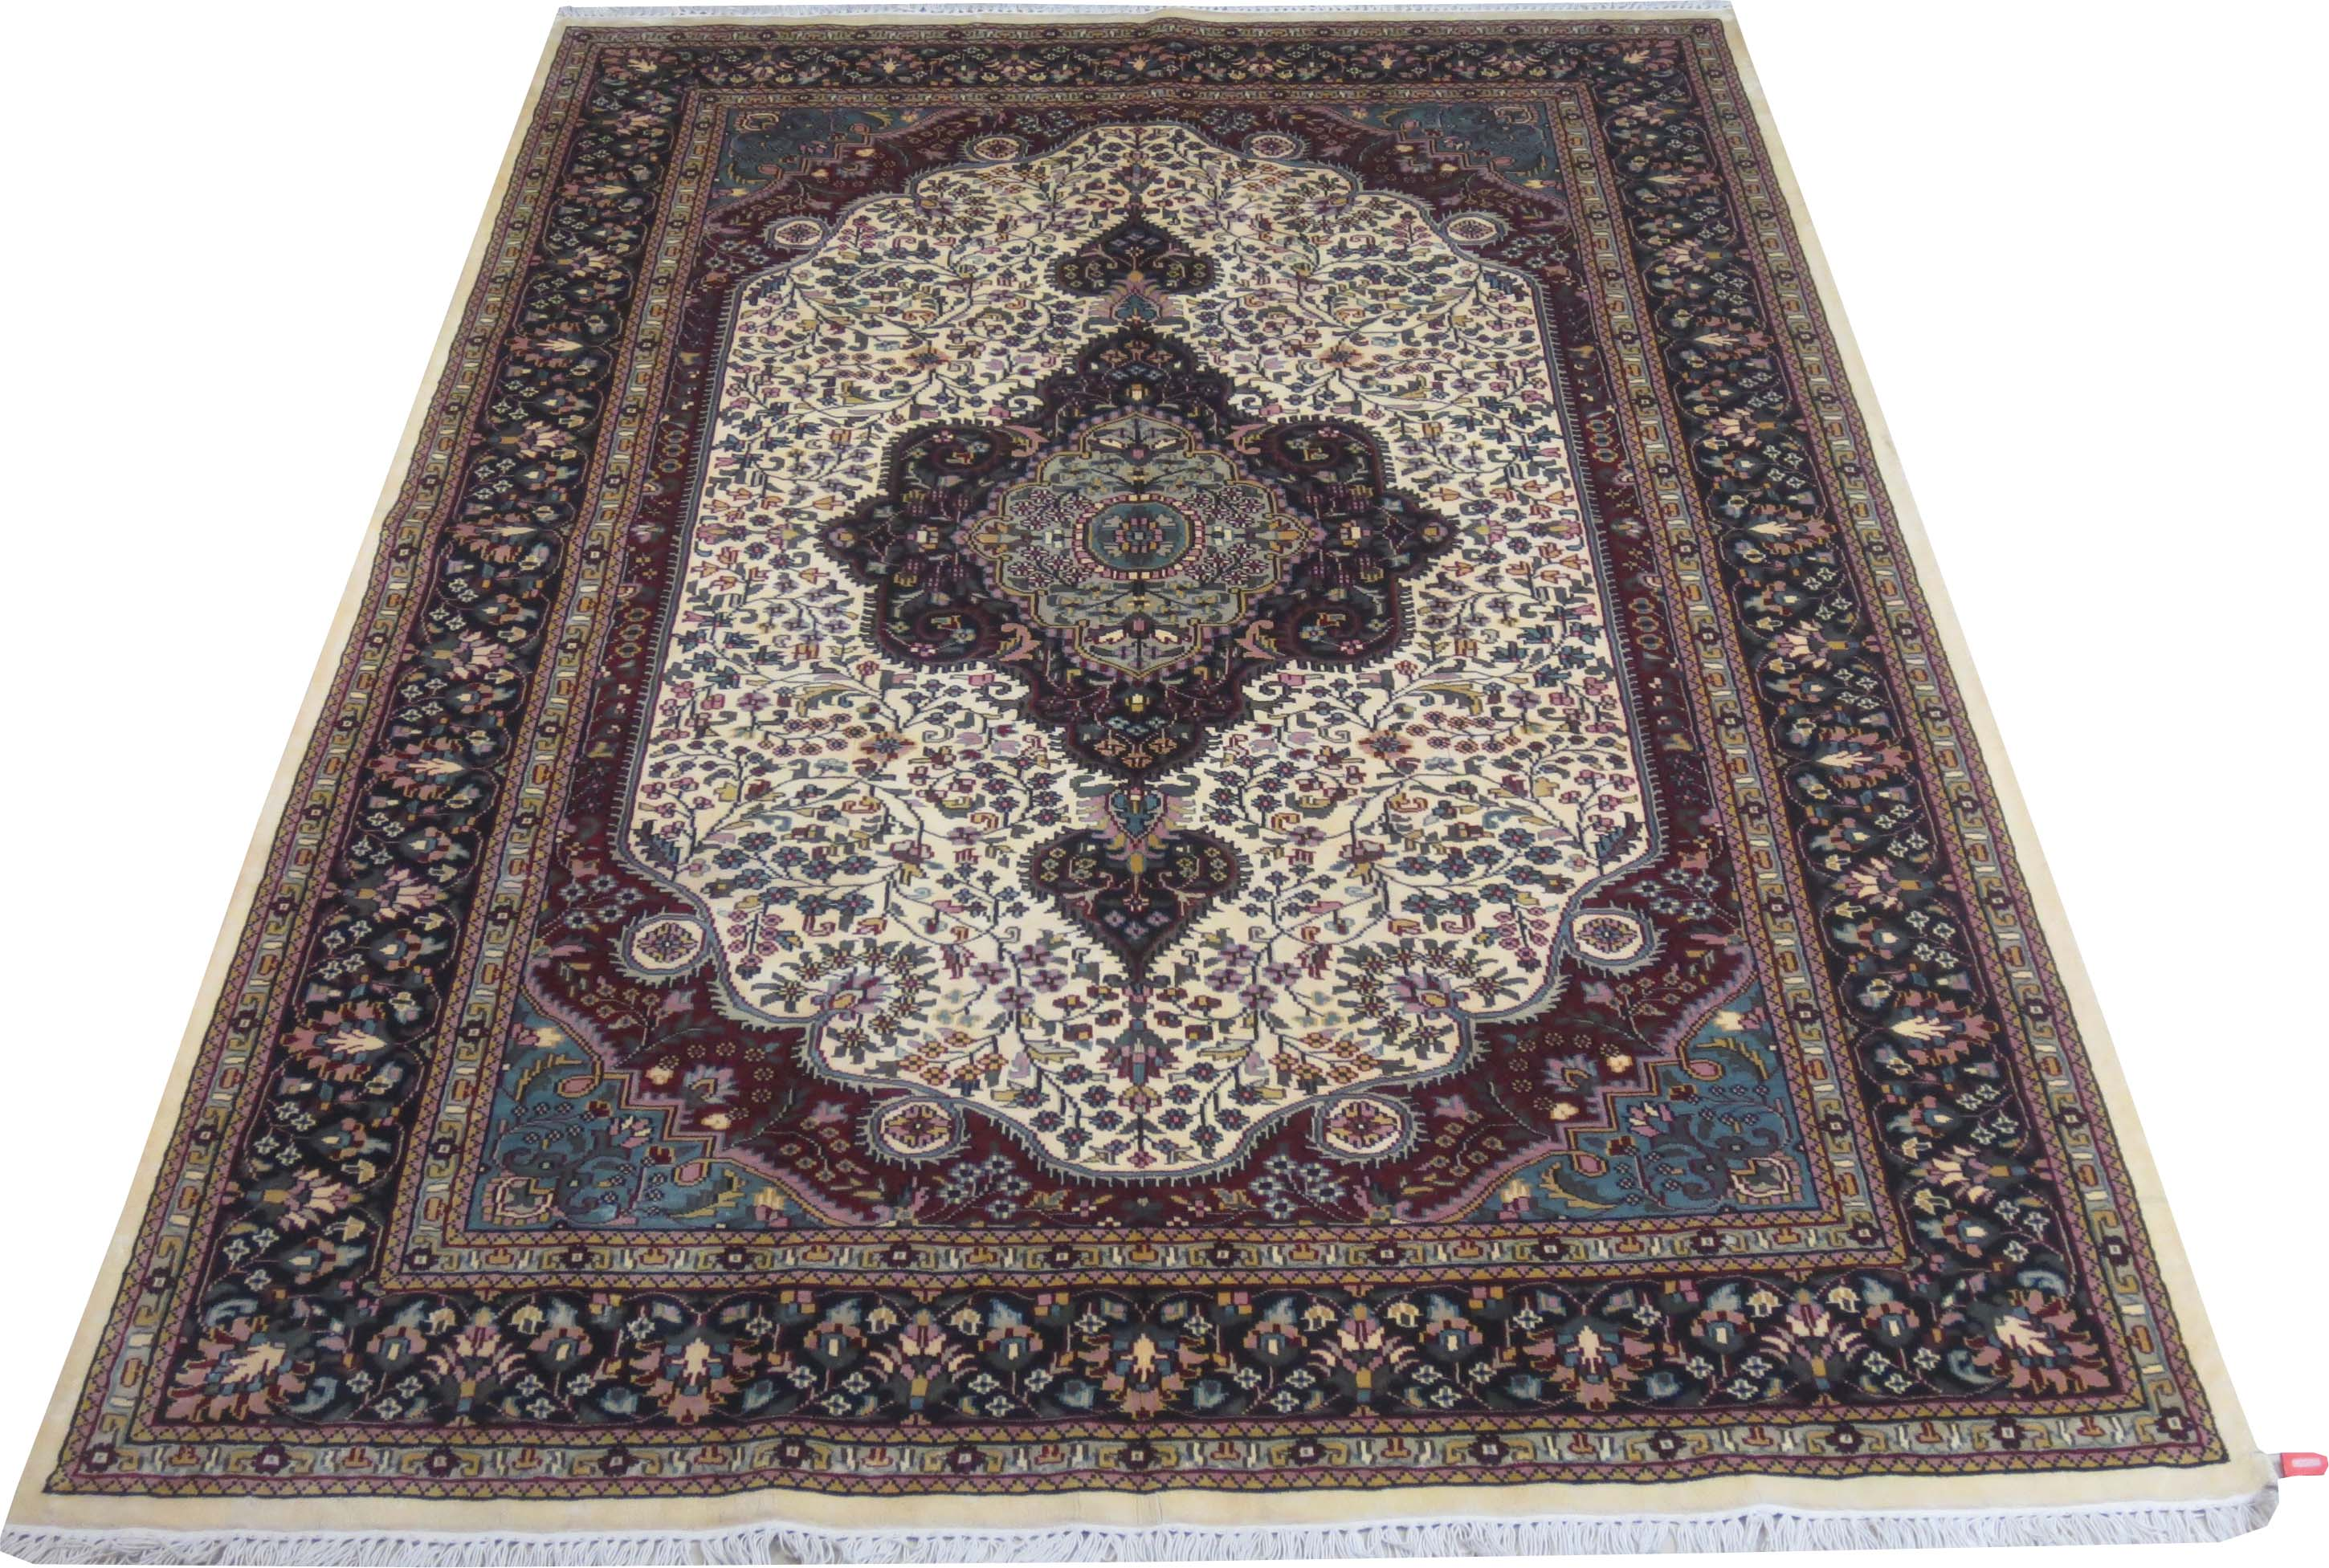 Ivory 6x9 Area Rugs Sale Silk Kashmir Cheap Rugs For Sale Handmade Oriental Rug : eBay